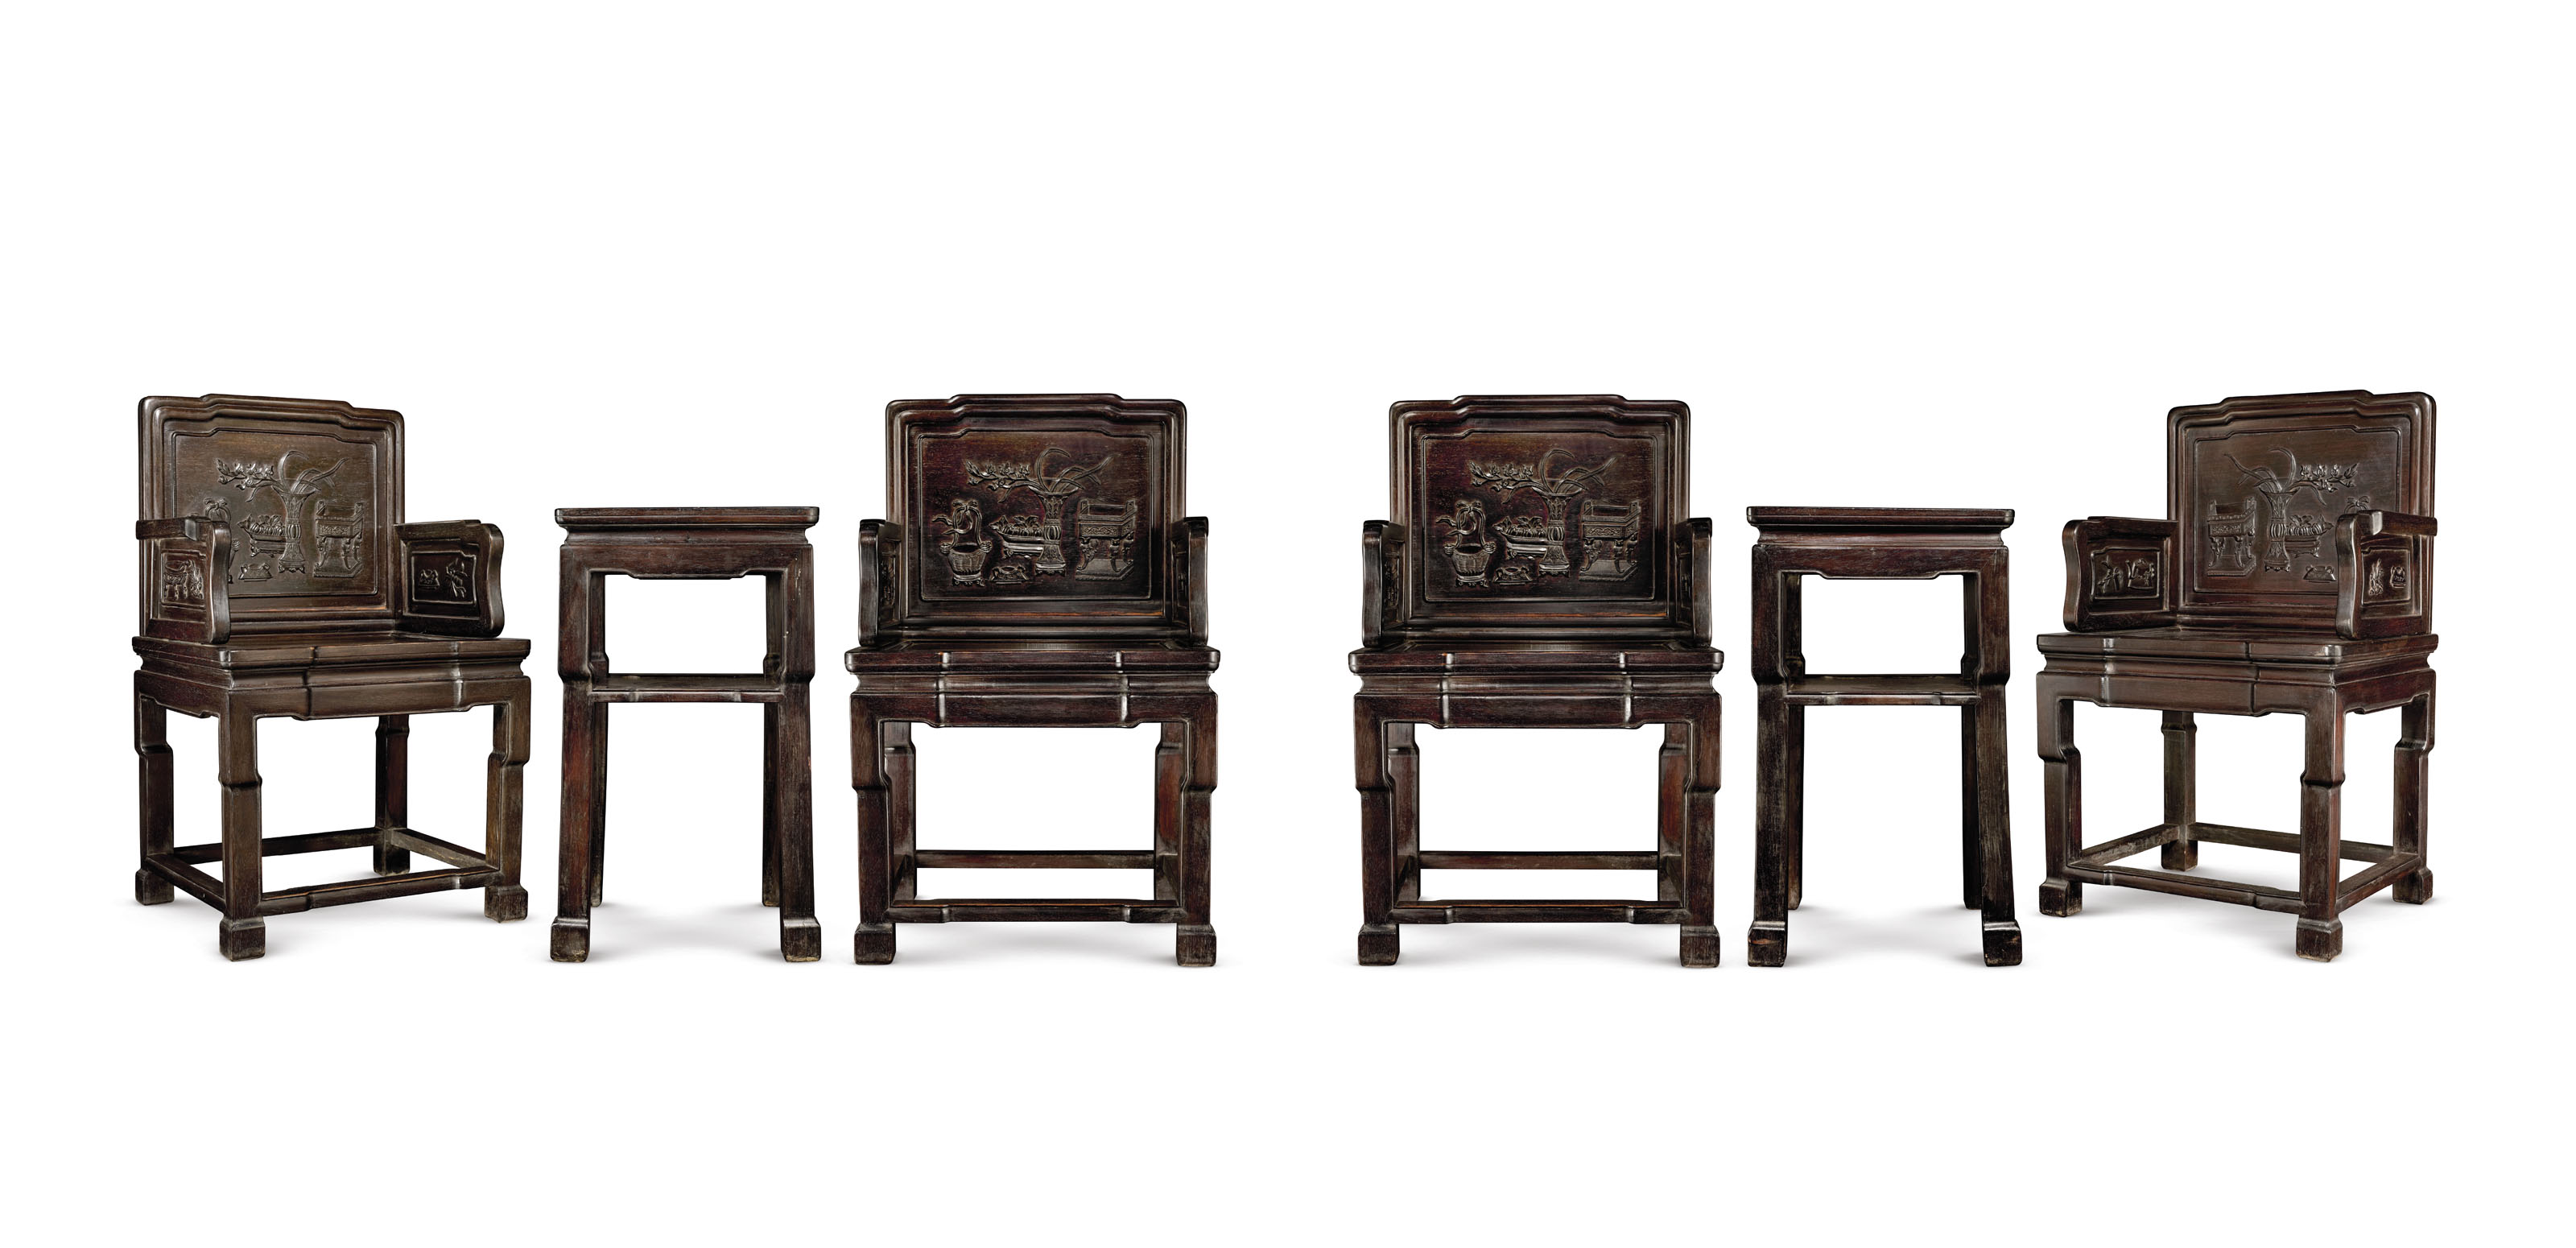 A SET OF FOUR CARVED HARDWOOD ARMCHAIRS AND TWO SQUARE SIDE TABLES